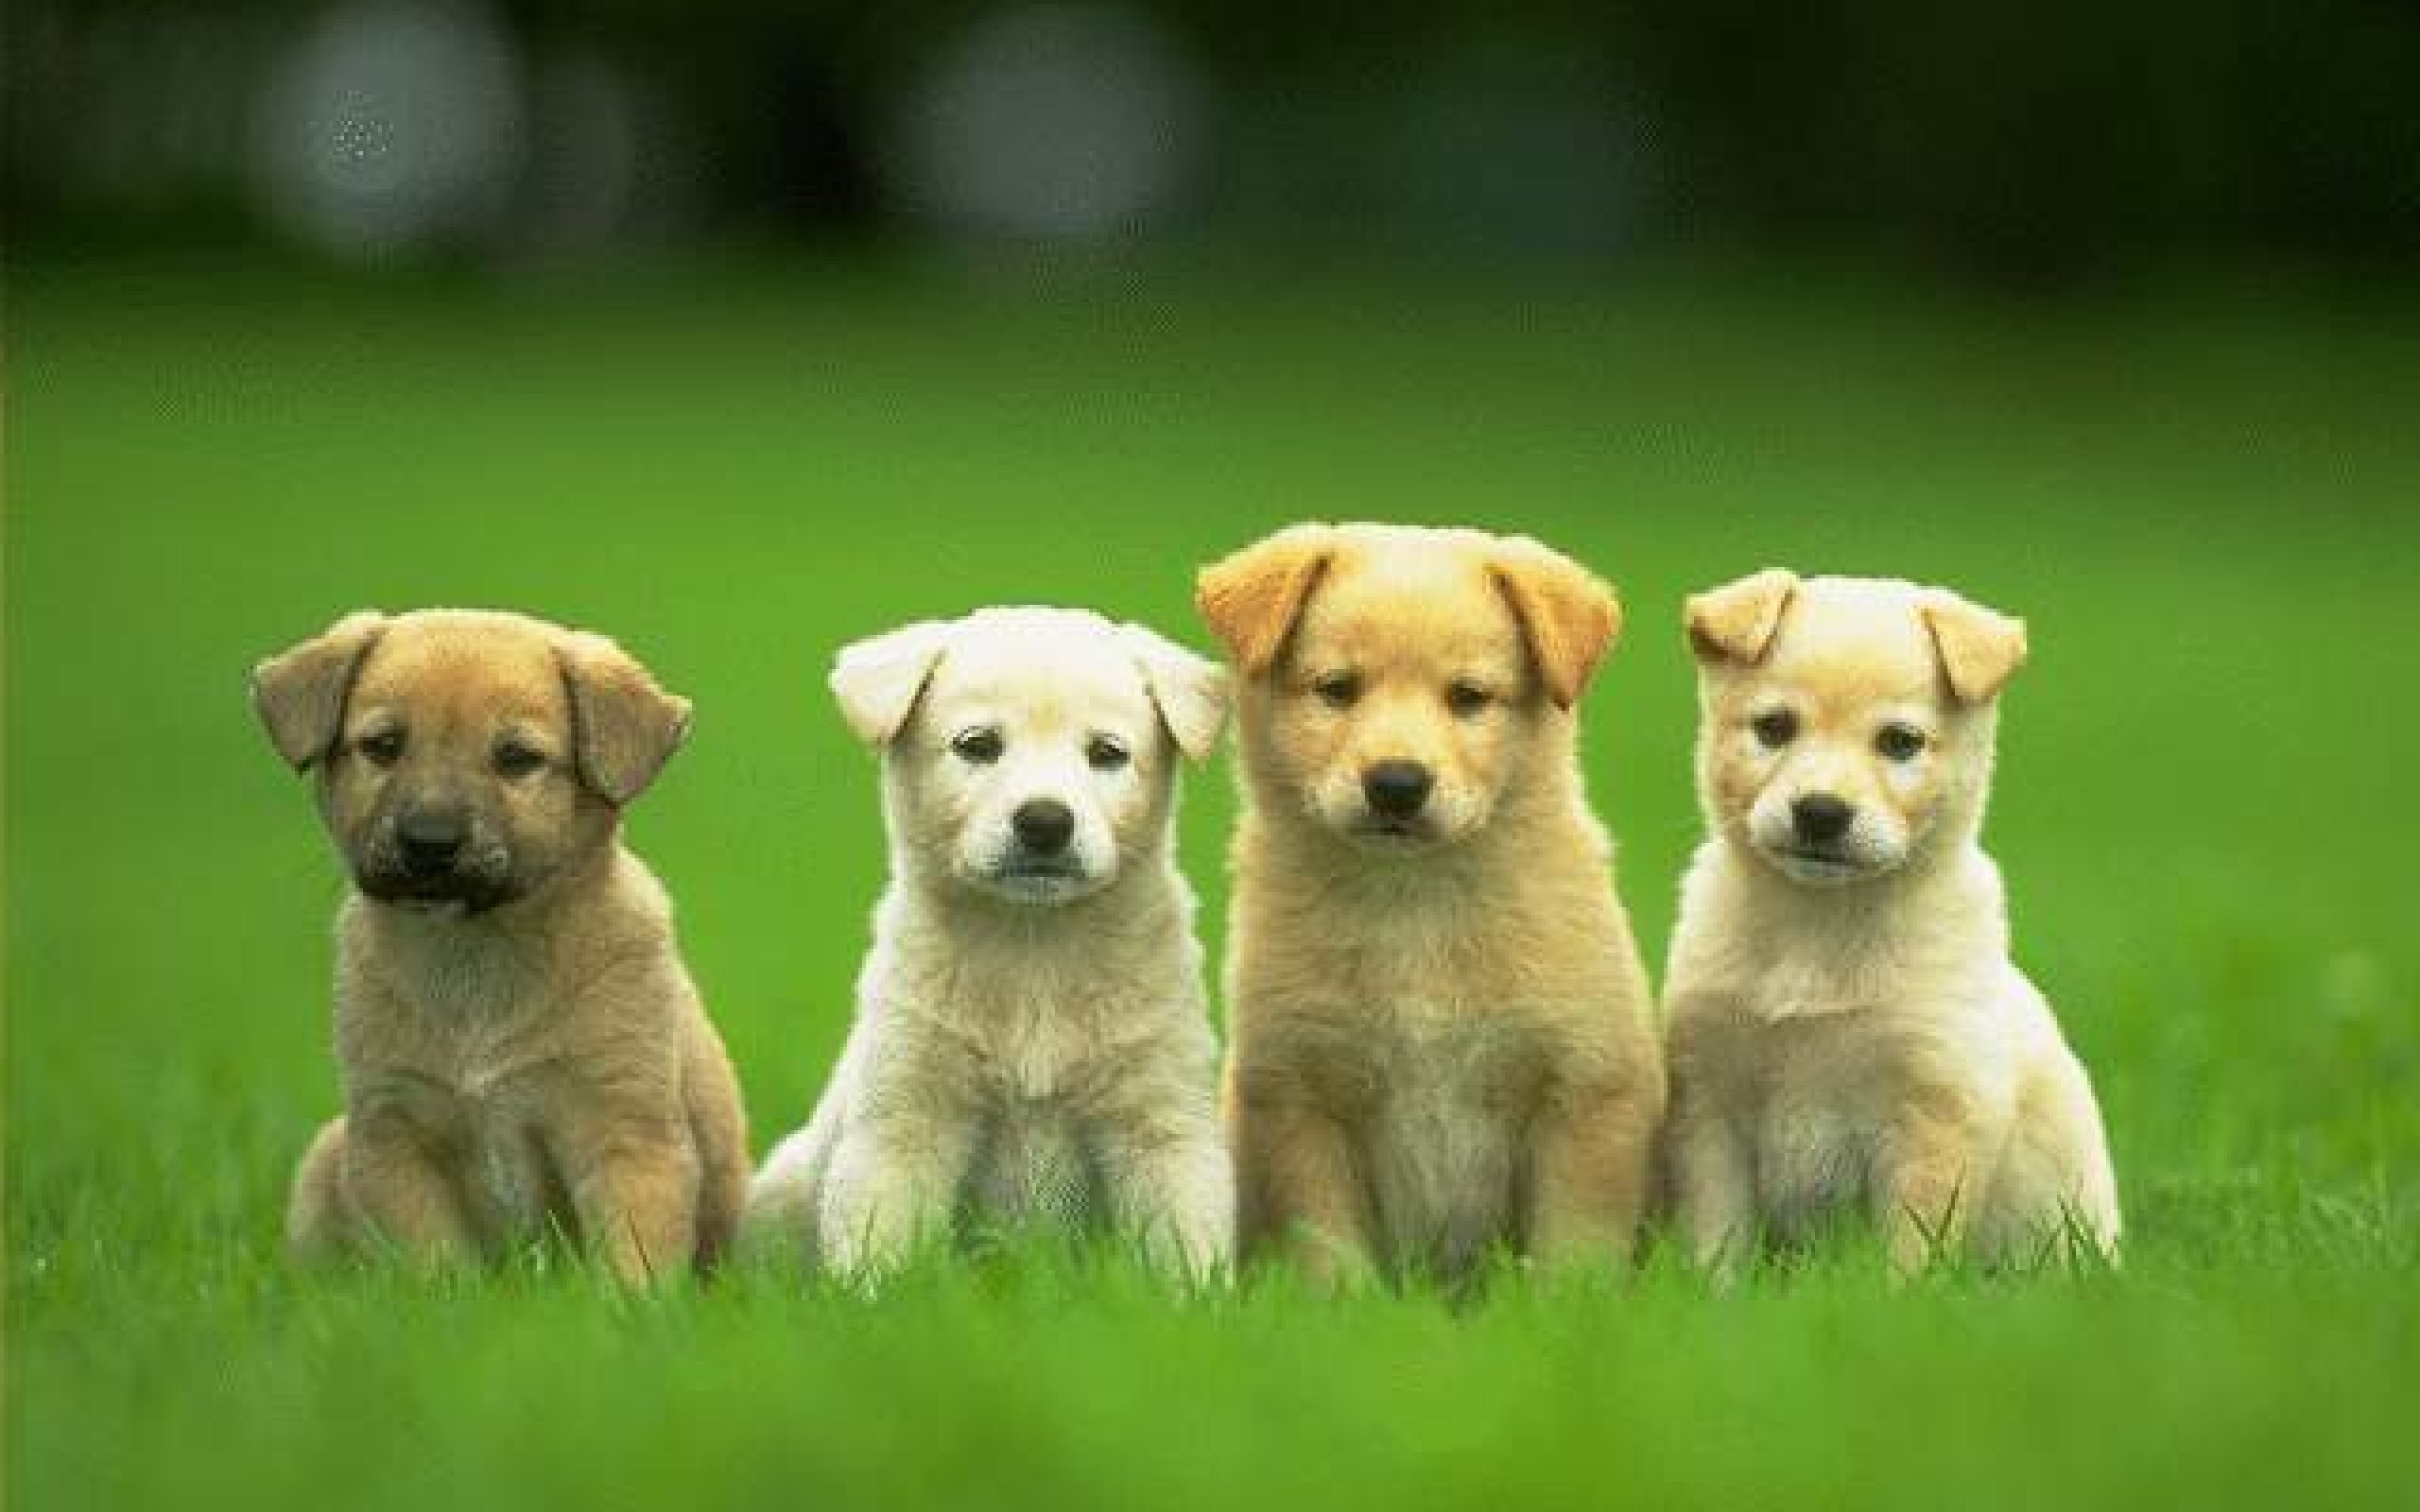 puppy dog wallpaper HD Wallpaper Backgrounds Tumblr Backgrounds 2560x1600